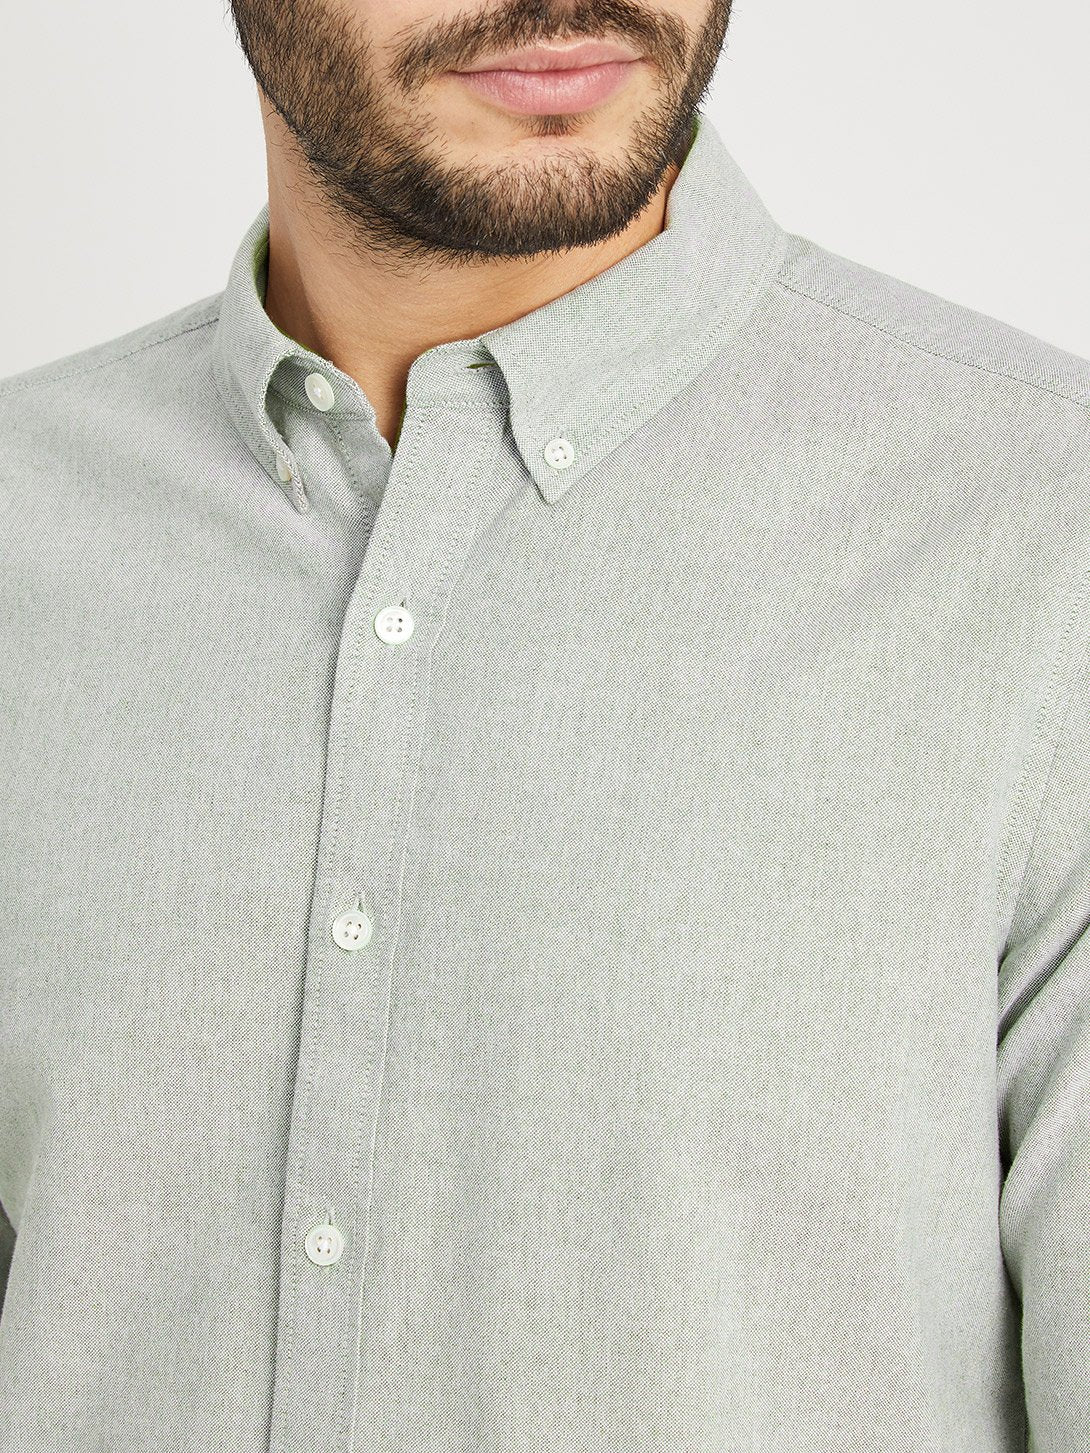 LIGHT GREEN button down shirt for men fulton heather oxford shirt ons clothing black friday deals